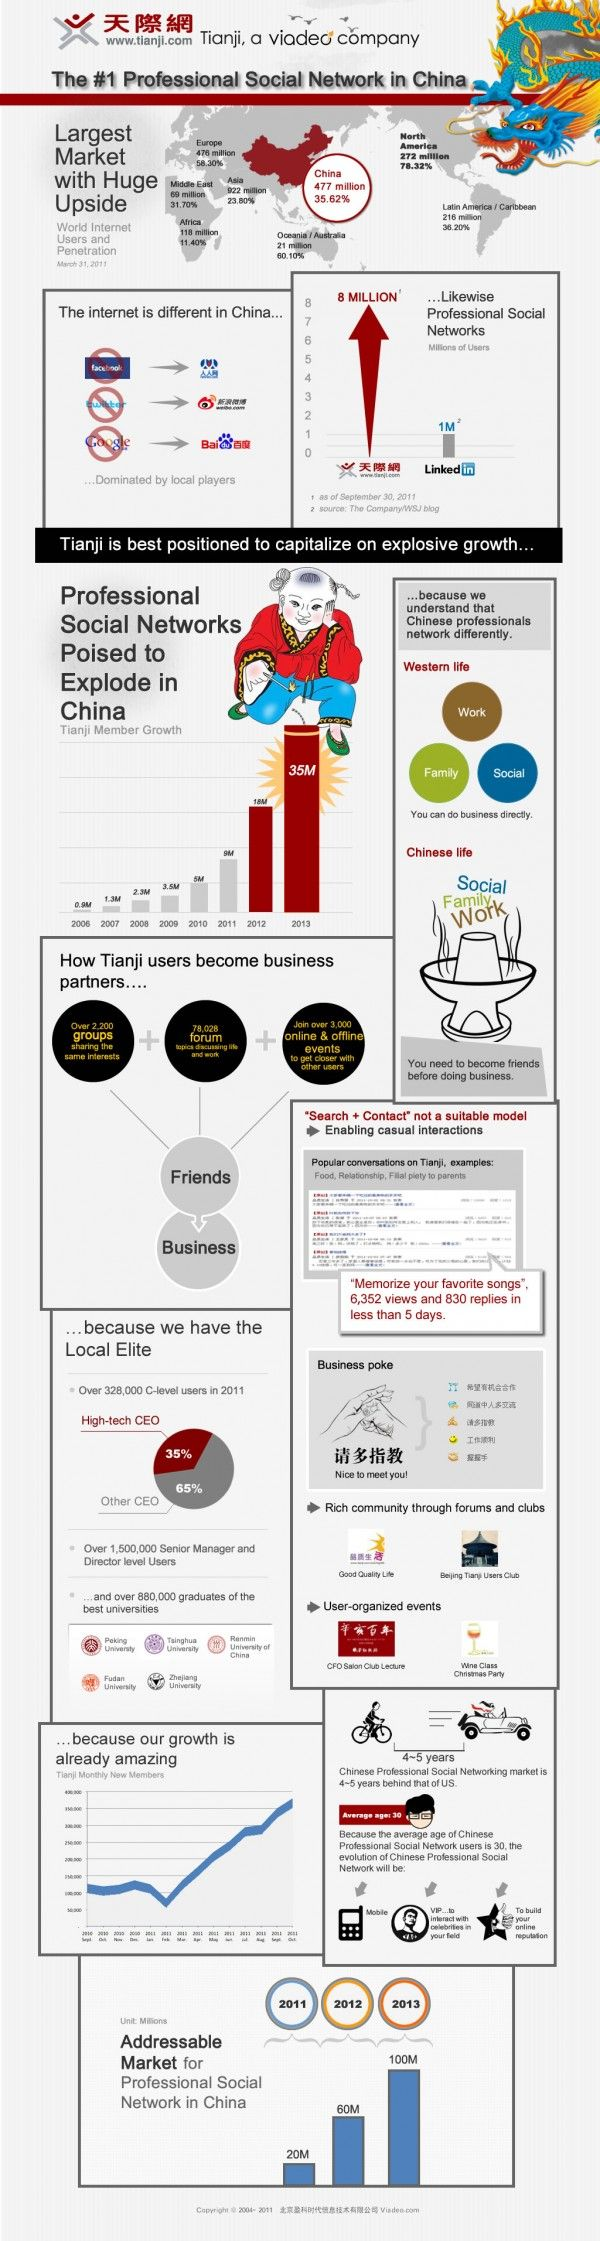 Business social networking in China set to grow five fold by 2013 [Infographic] #FlowConnection